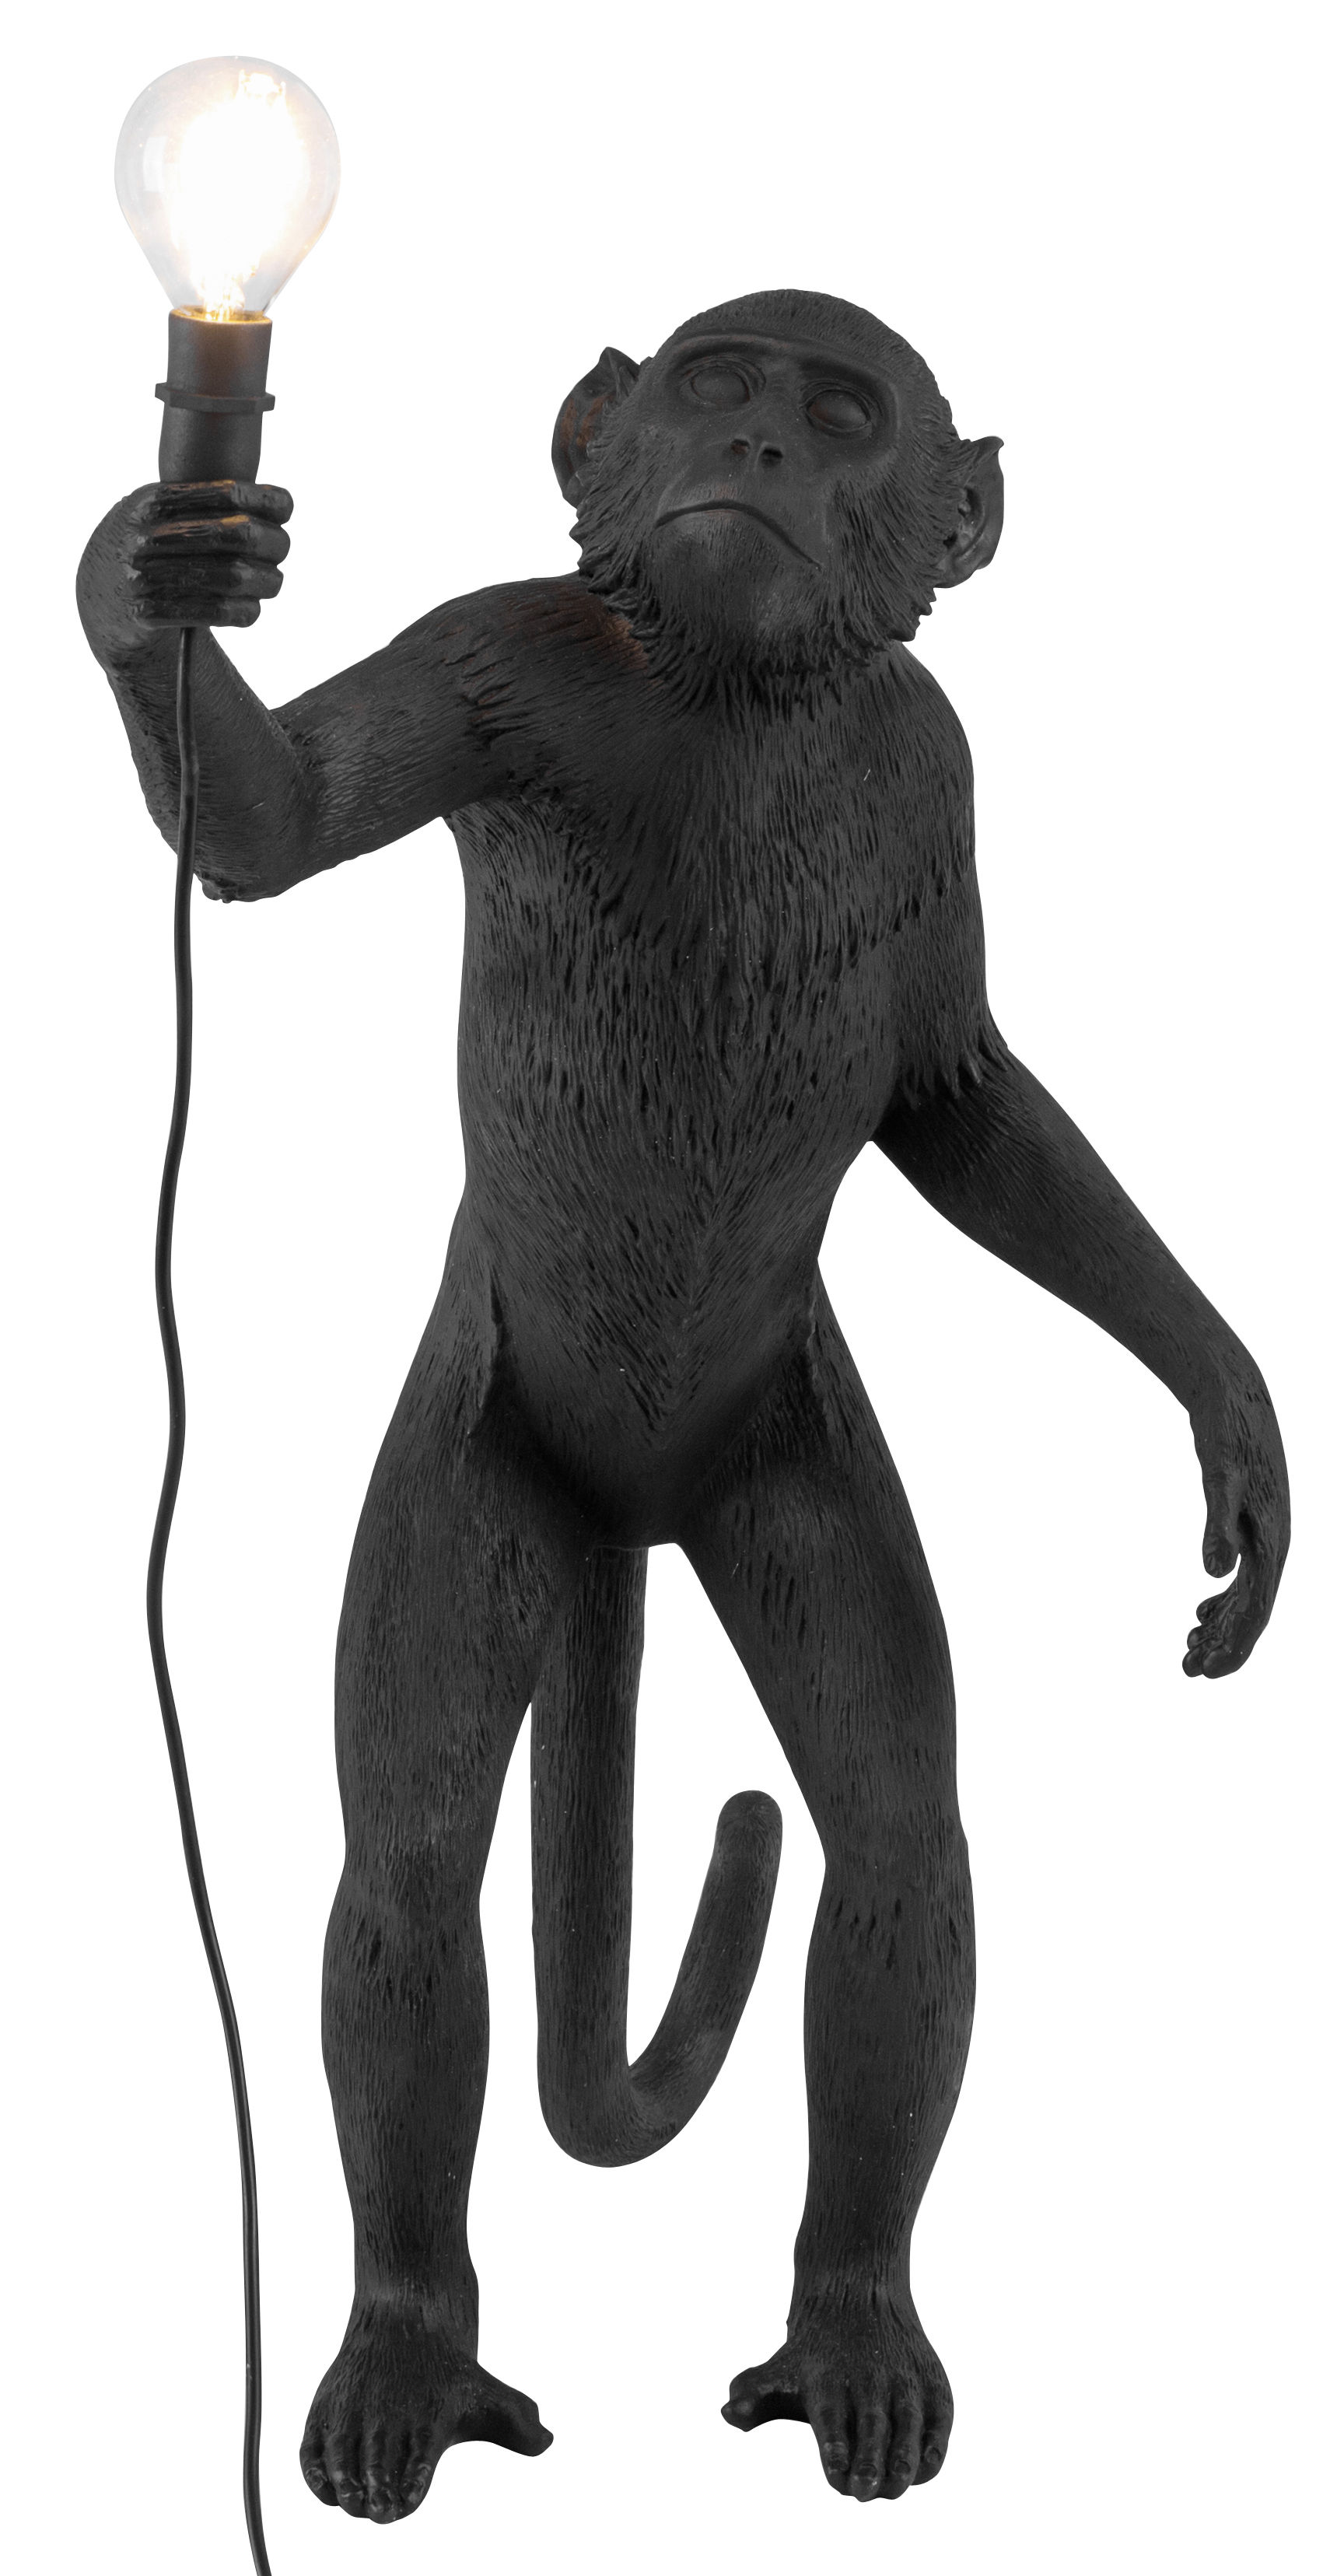 Lighting - Table Lamps - Monkey Standing Table lamp - Outdoor / H 54 cm by Seletti - Black - Resin